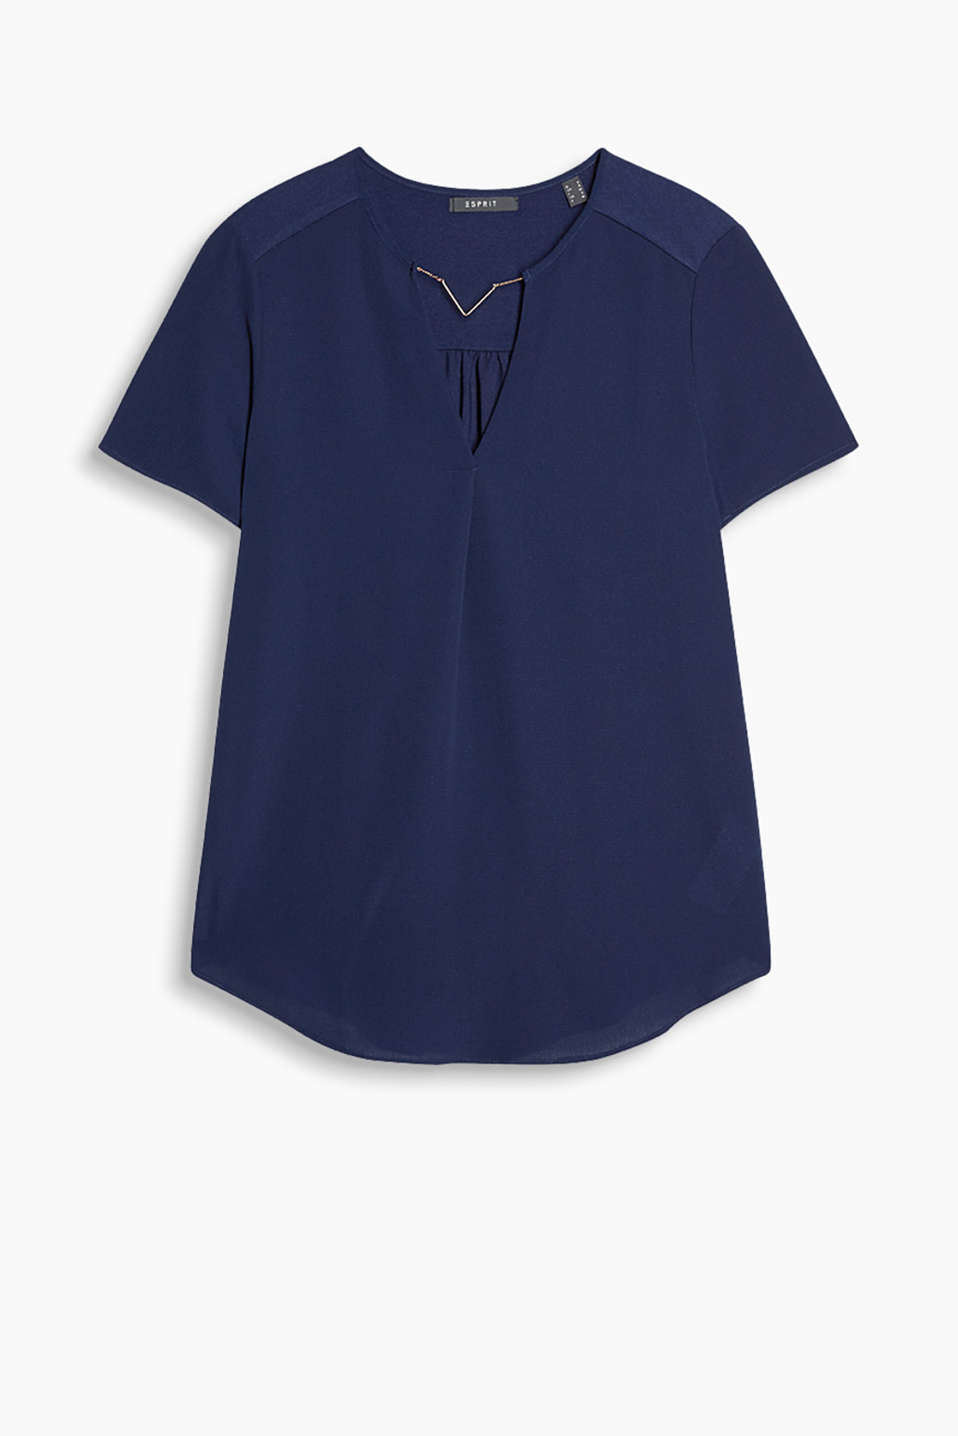 Blouse top with a decorative chain in textured fabric and soft jersey